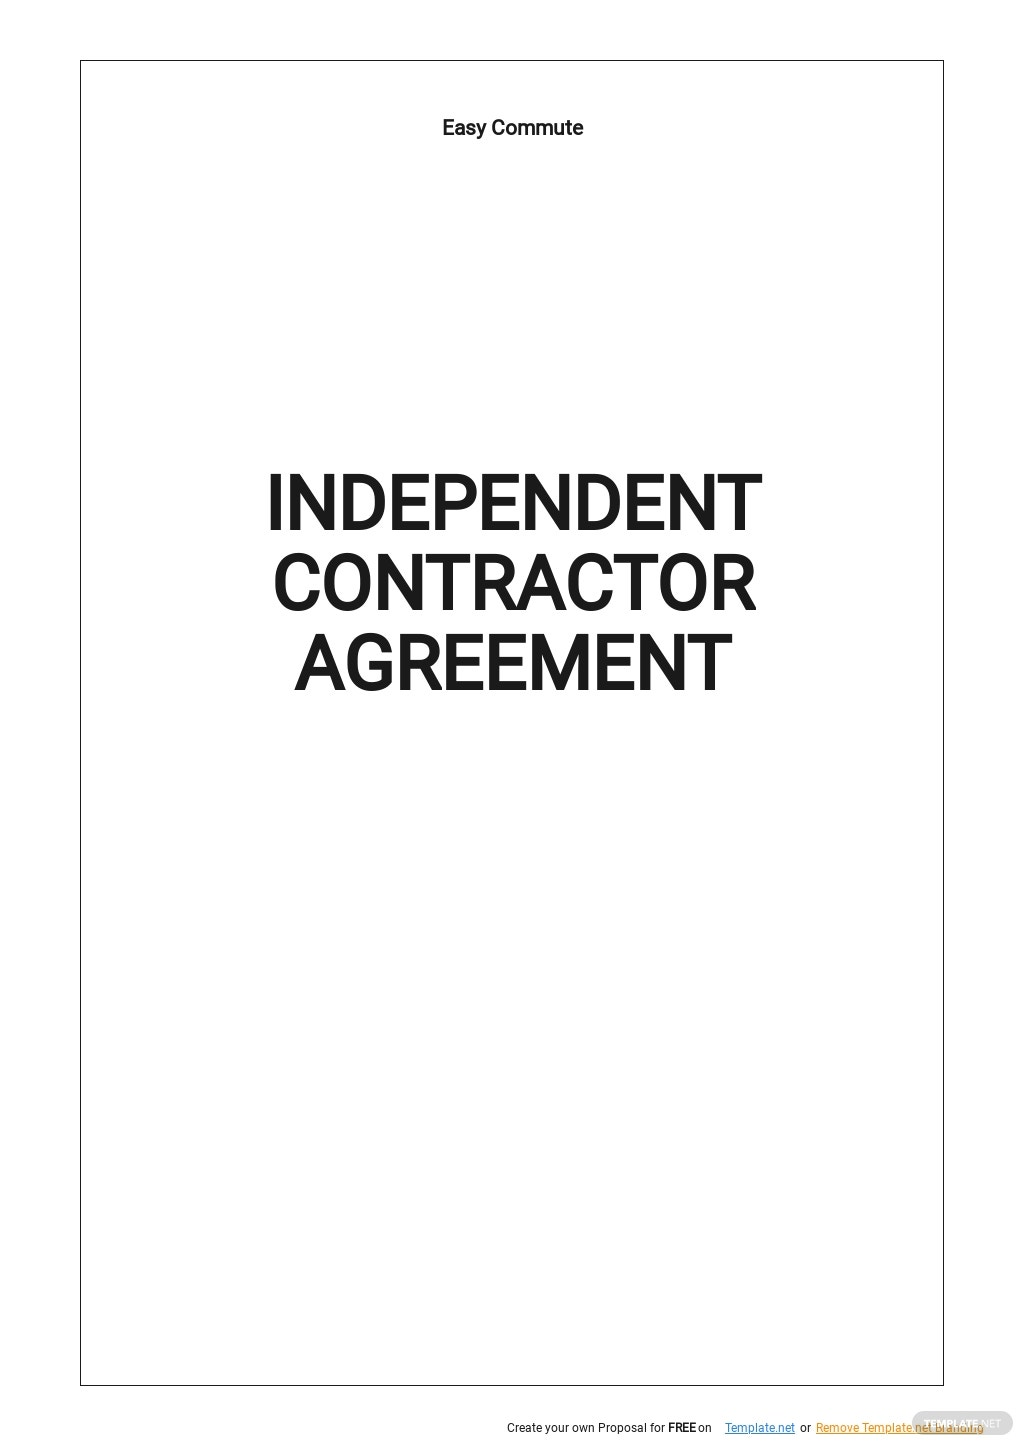 Independent Contractor Agreement Template.jpe